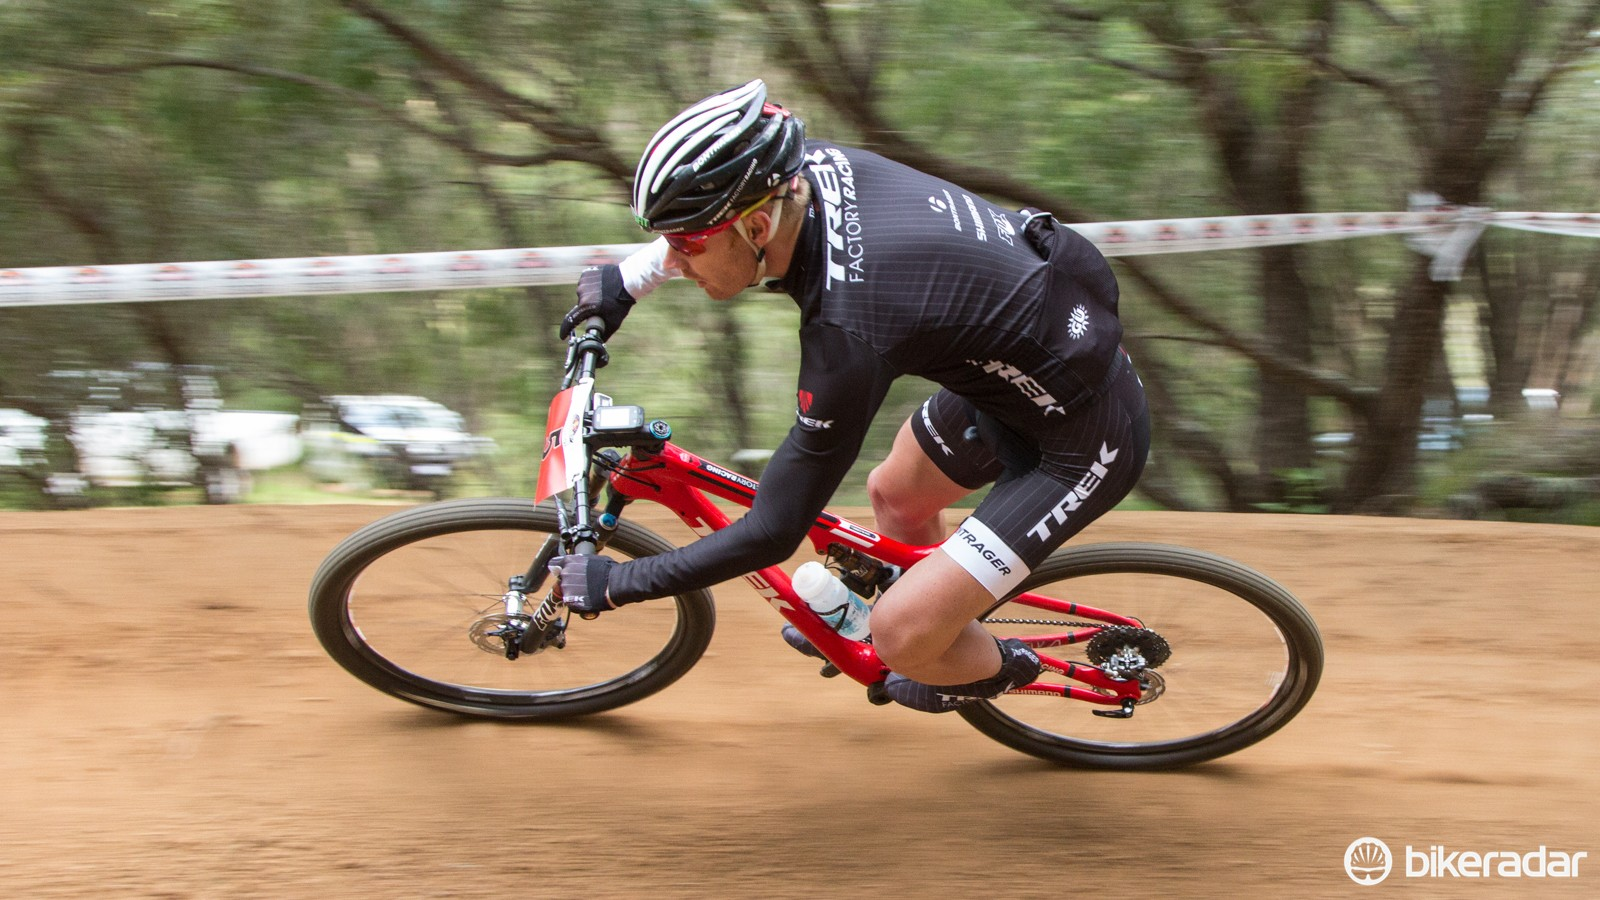 BikeRadar caught up with Dan McConnell at the Cape to Cape mountain bike race in Margaret River, Australia